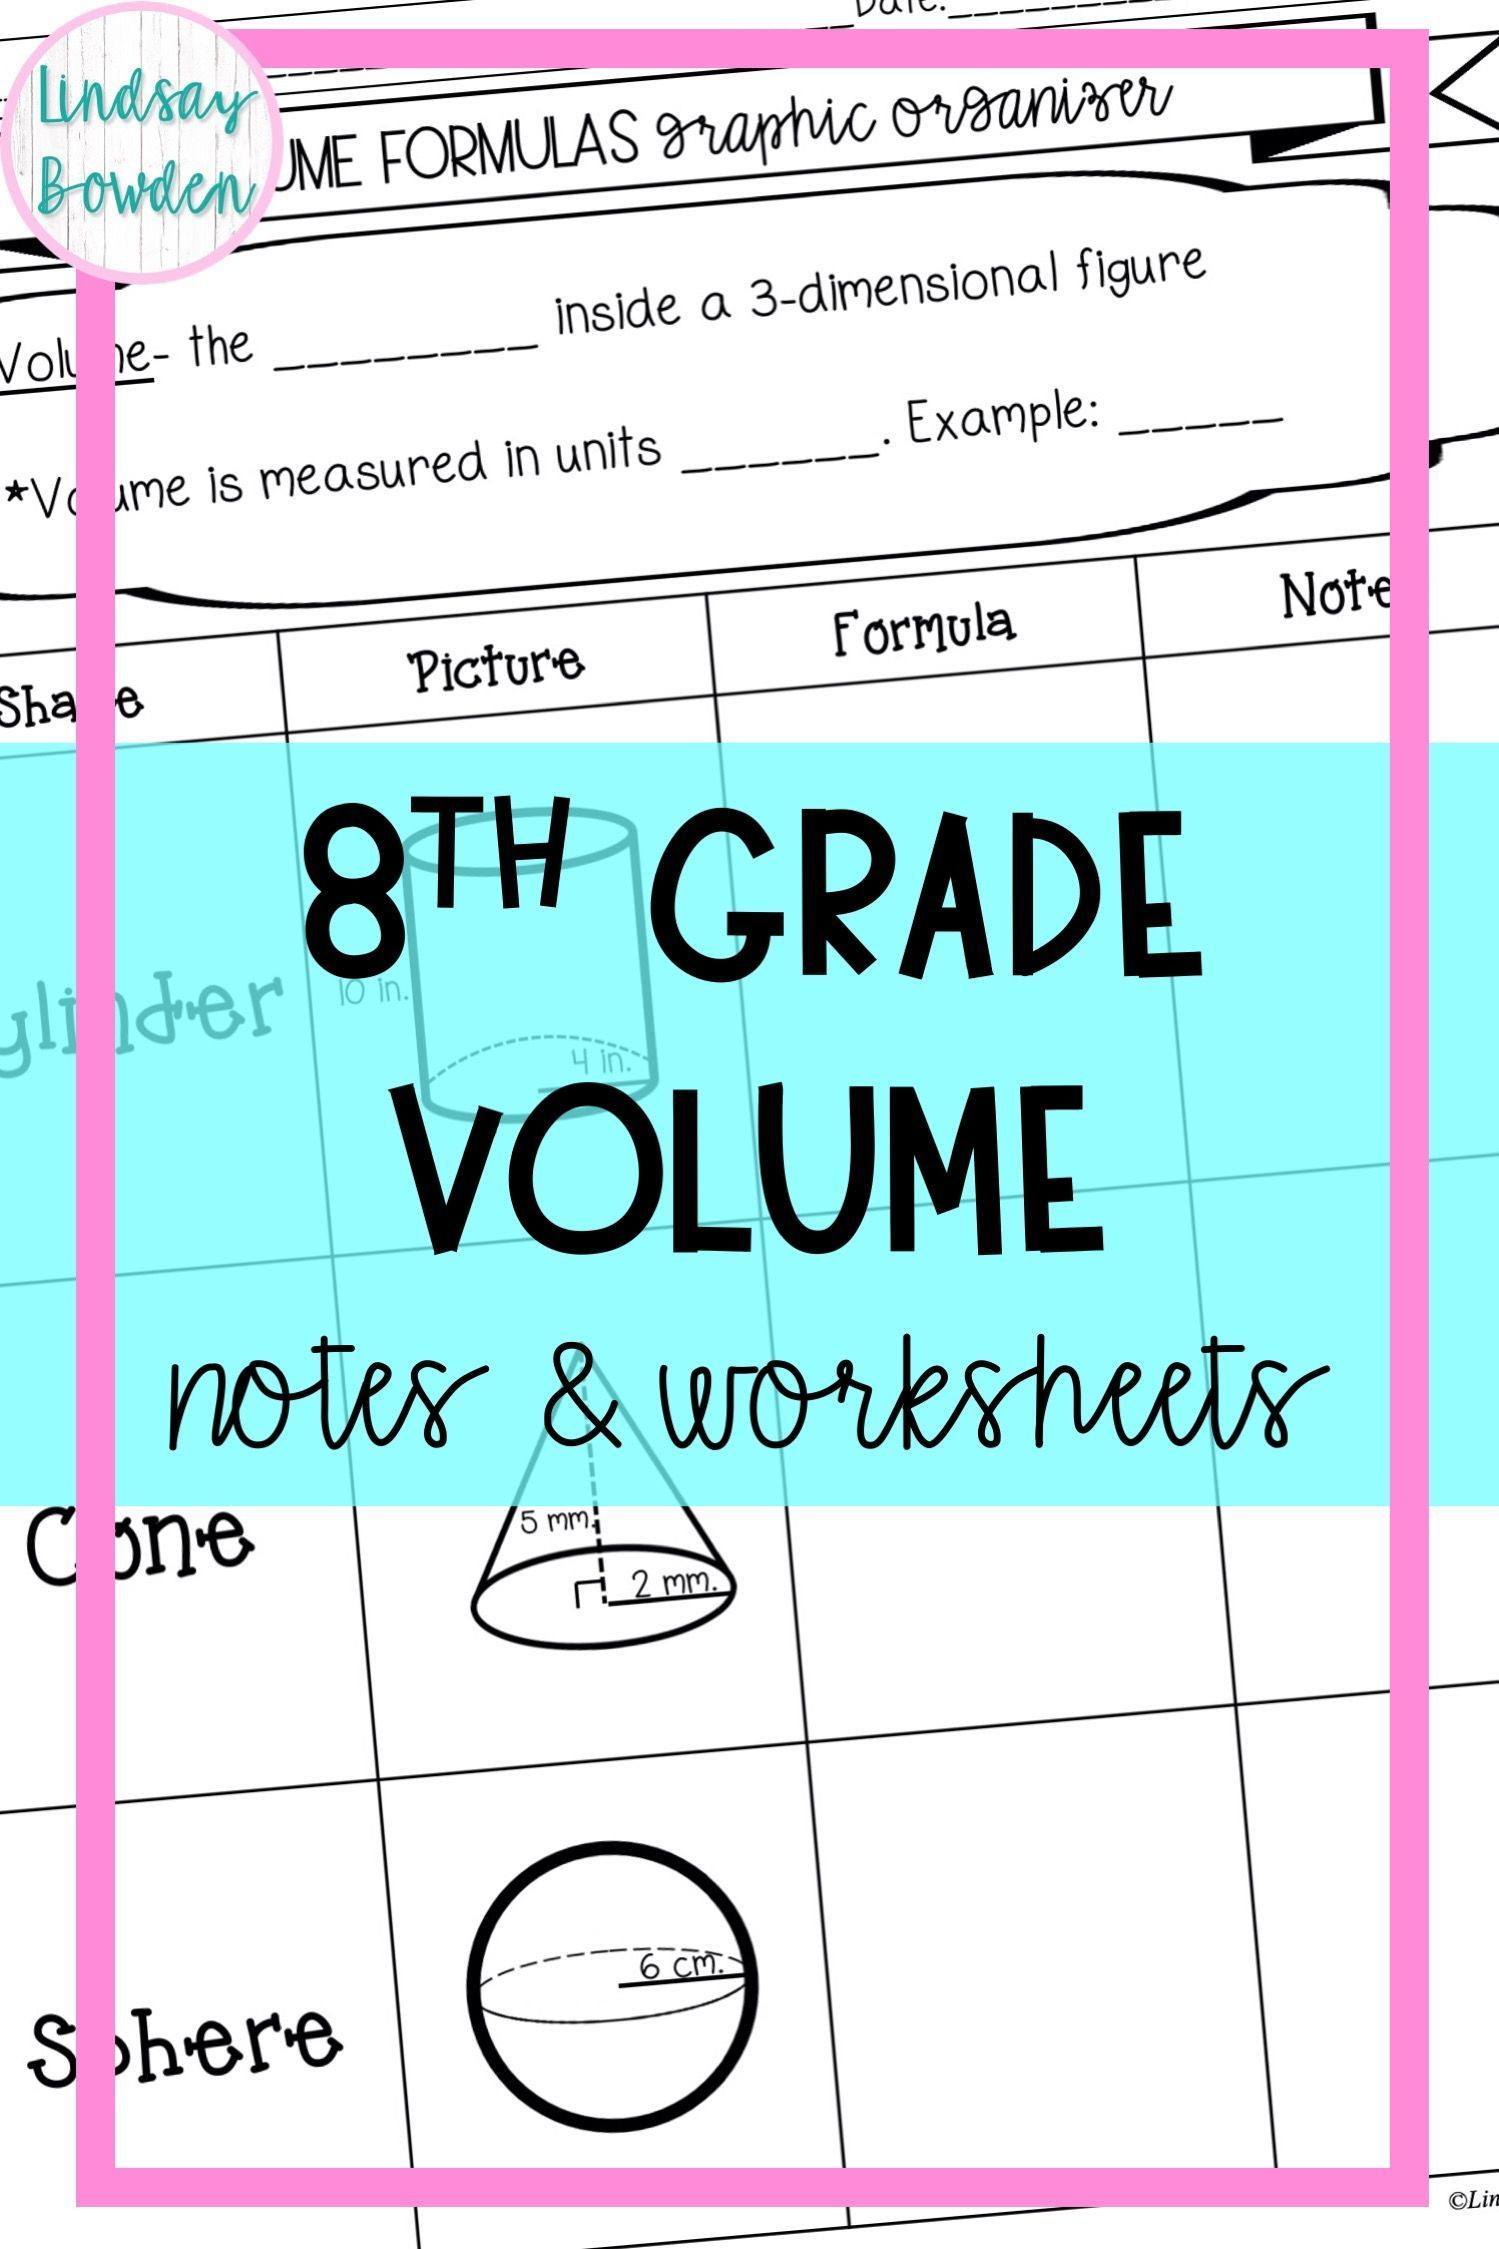 hight resolution of Volume Notes and Worksheets (8th Grade)   Middle school math resources